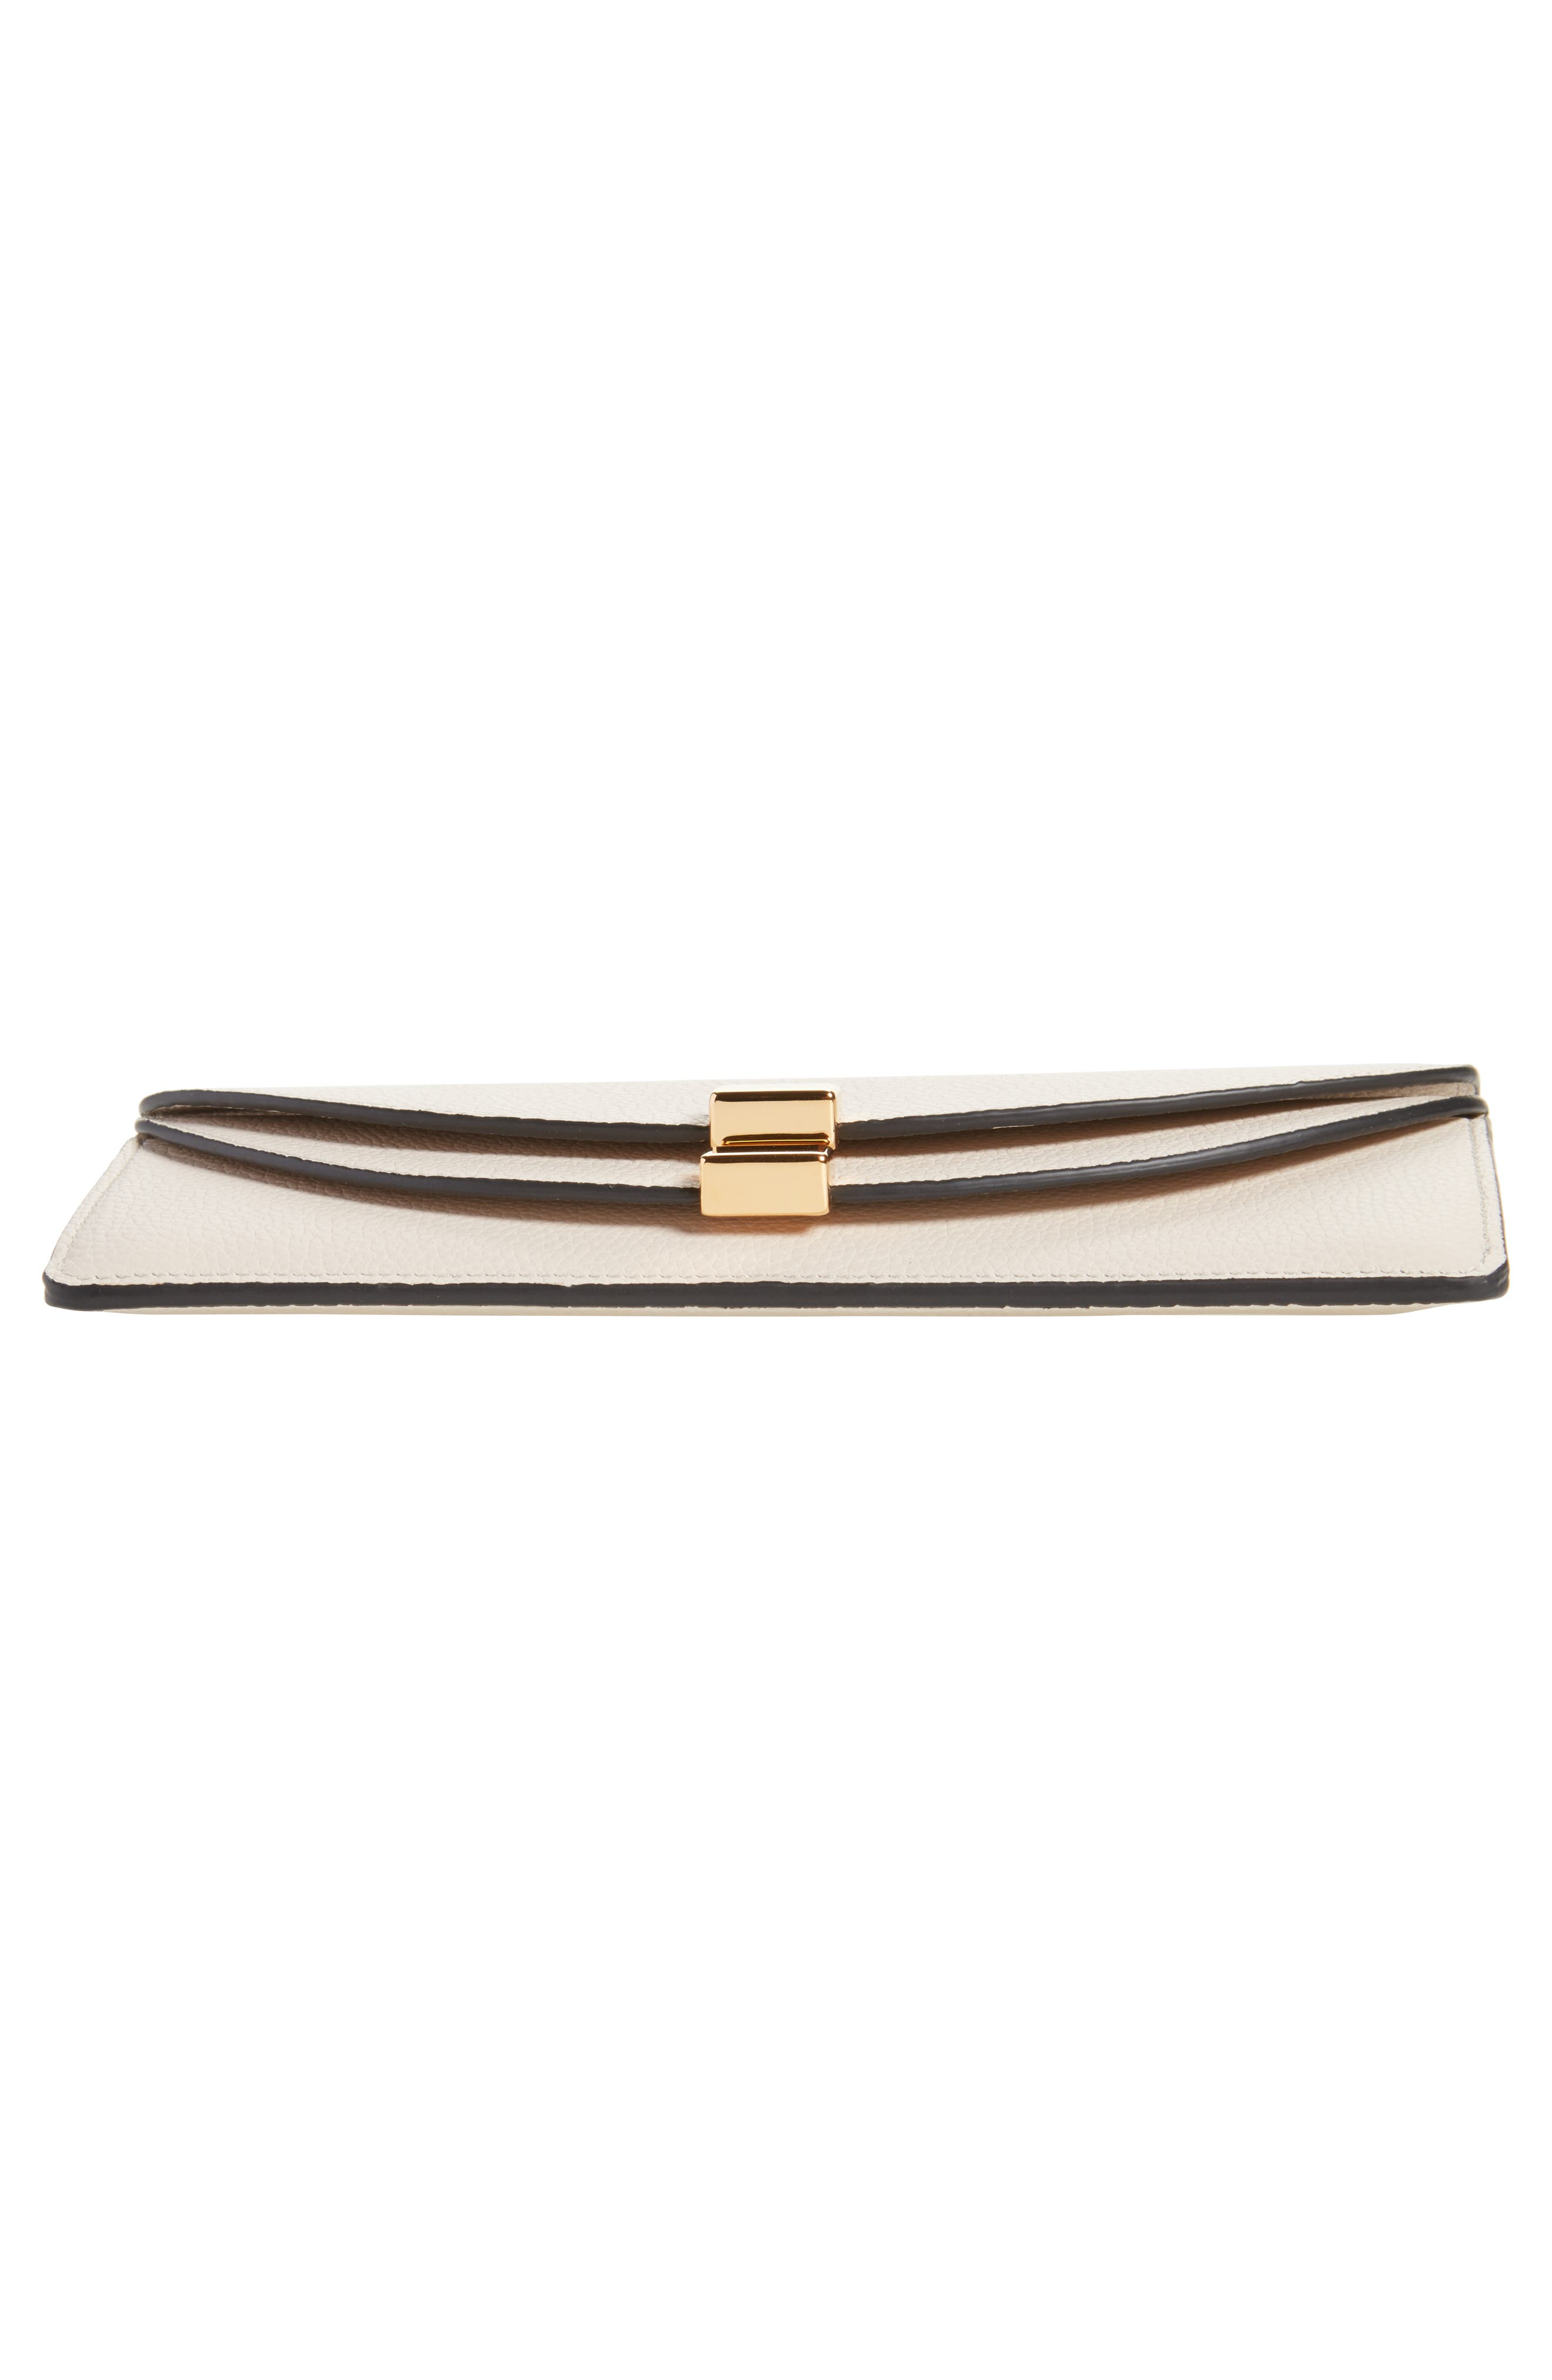 Georgia Continental Leather Wallet,                             Alternate thumbnail 6, color,                             ABSTRACT WHITE